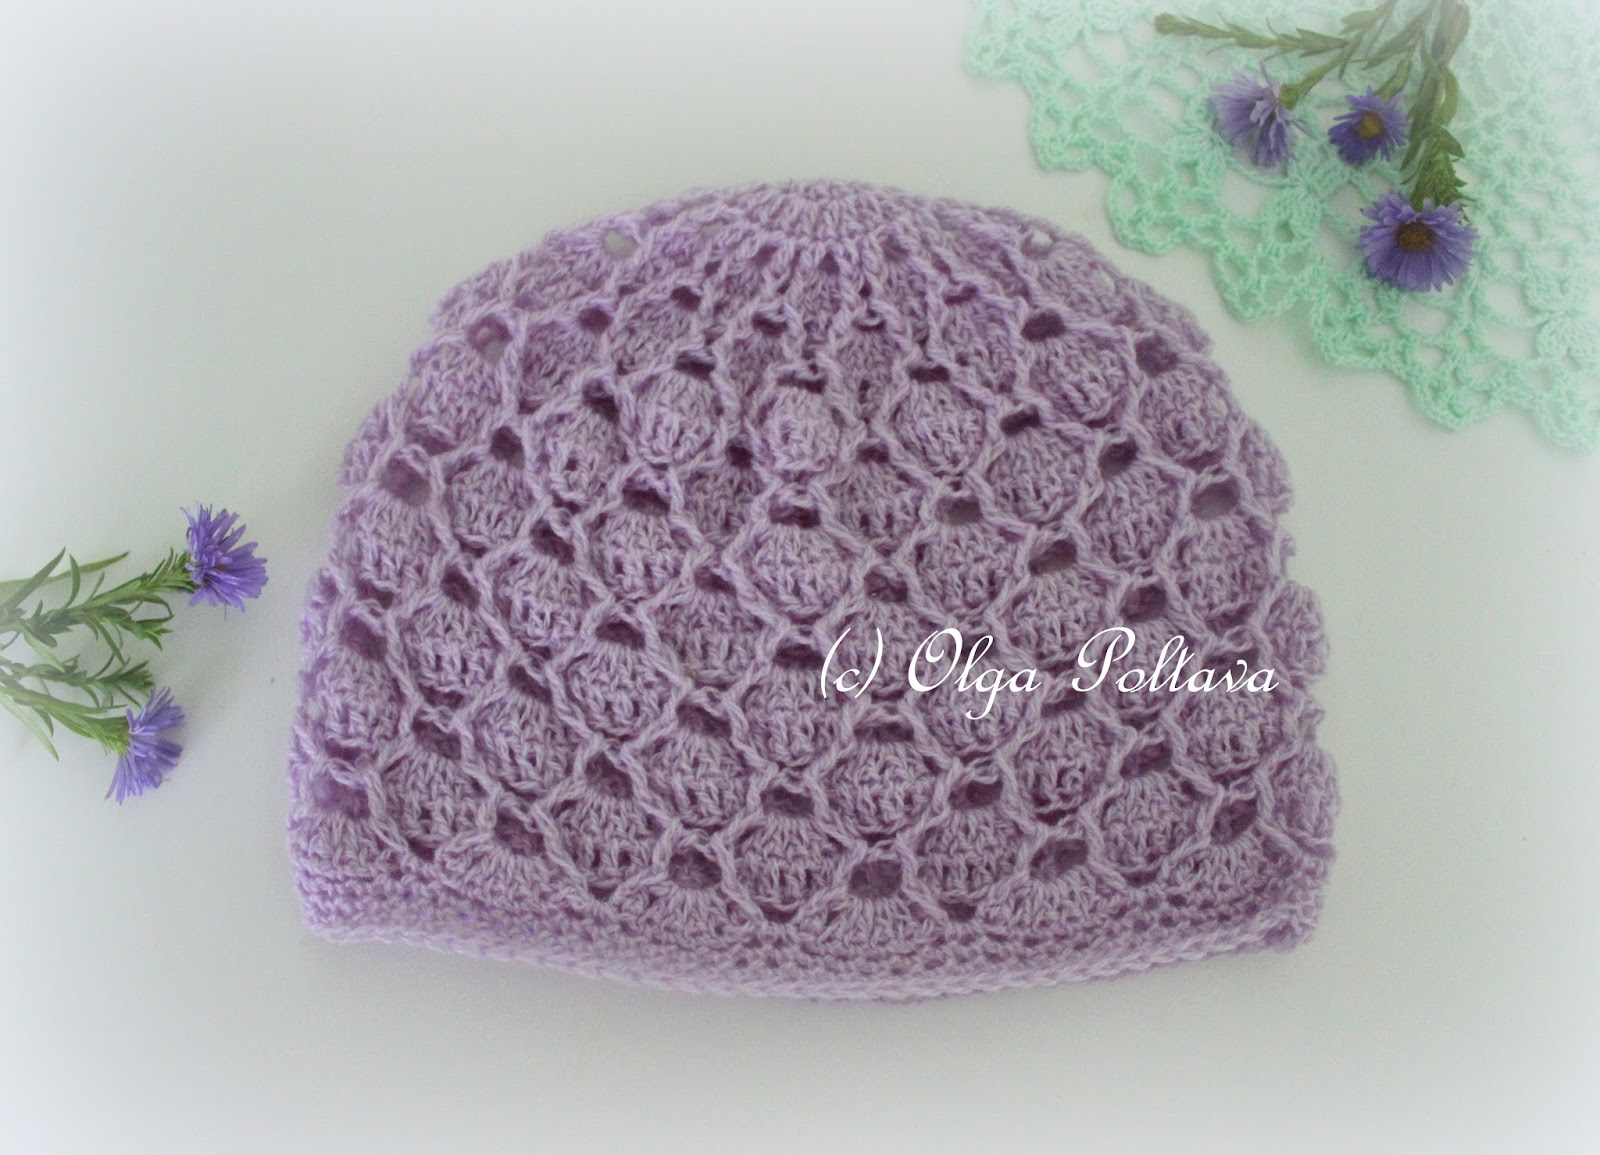 Crochet Stitches On Pinterest : ... Crochet: Delicate Lace Crochet Baby Hat, Free Pattern from Pinterest